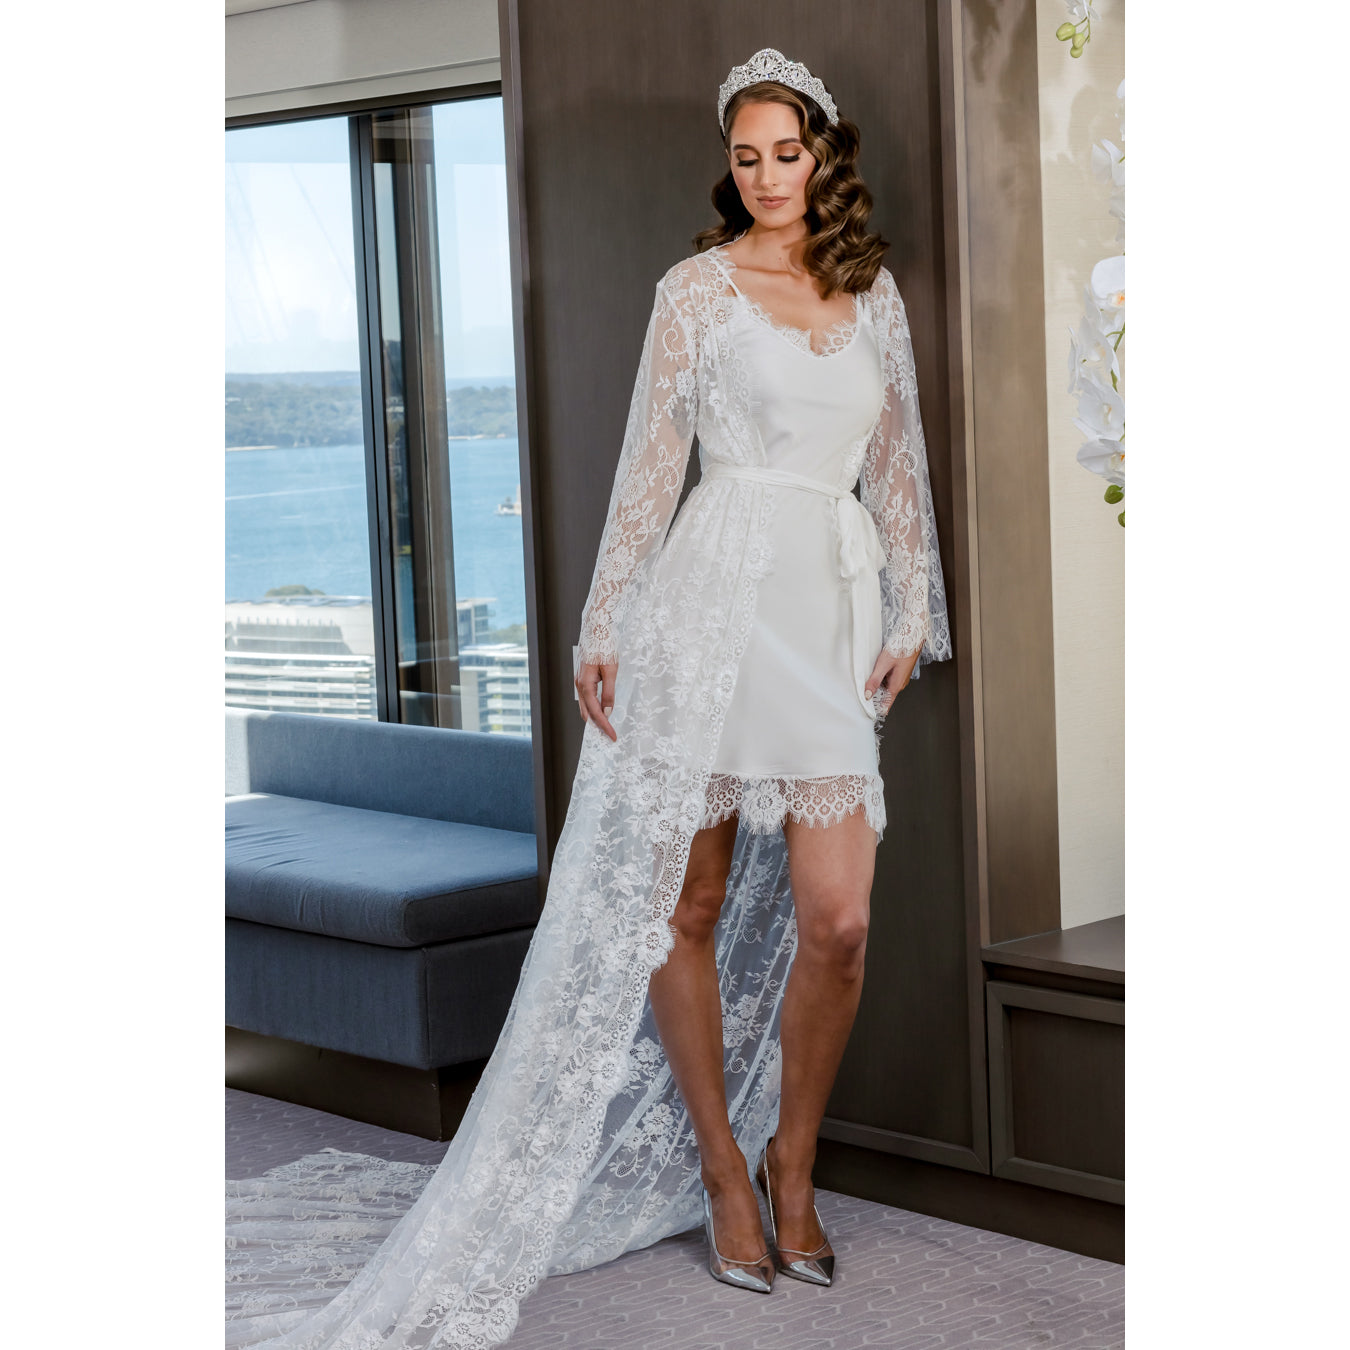 Anastasia Bridal Lace Robe with Long Train